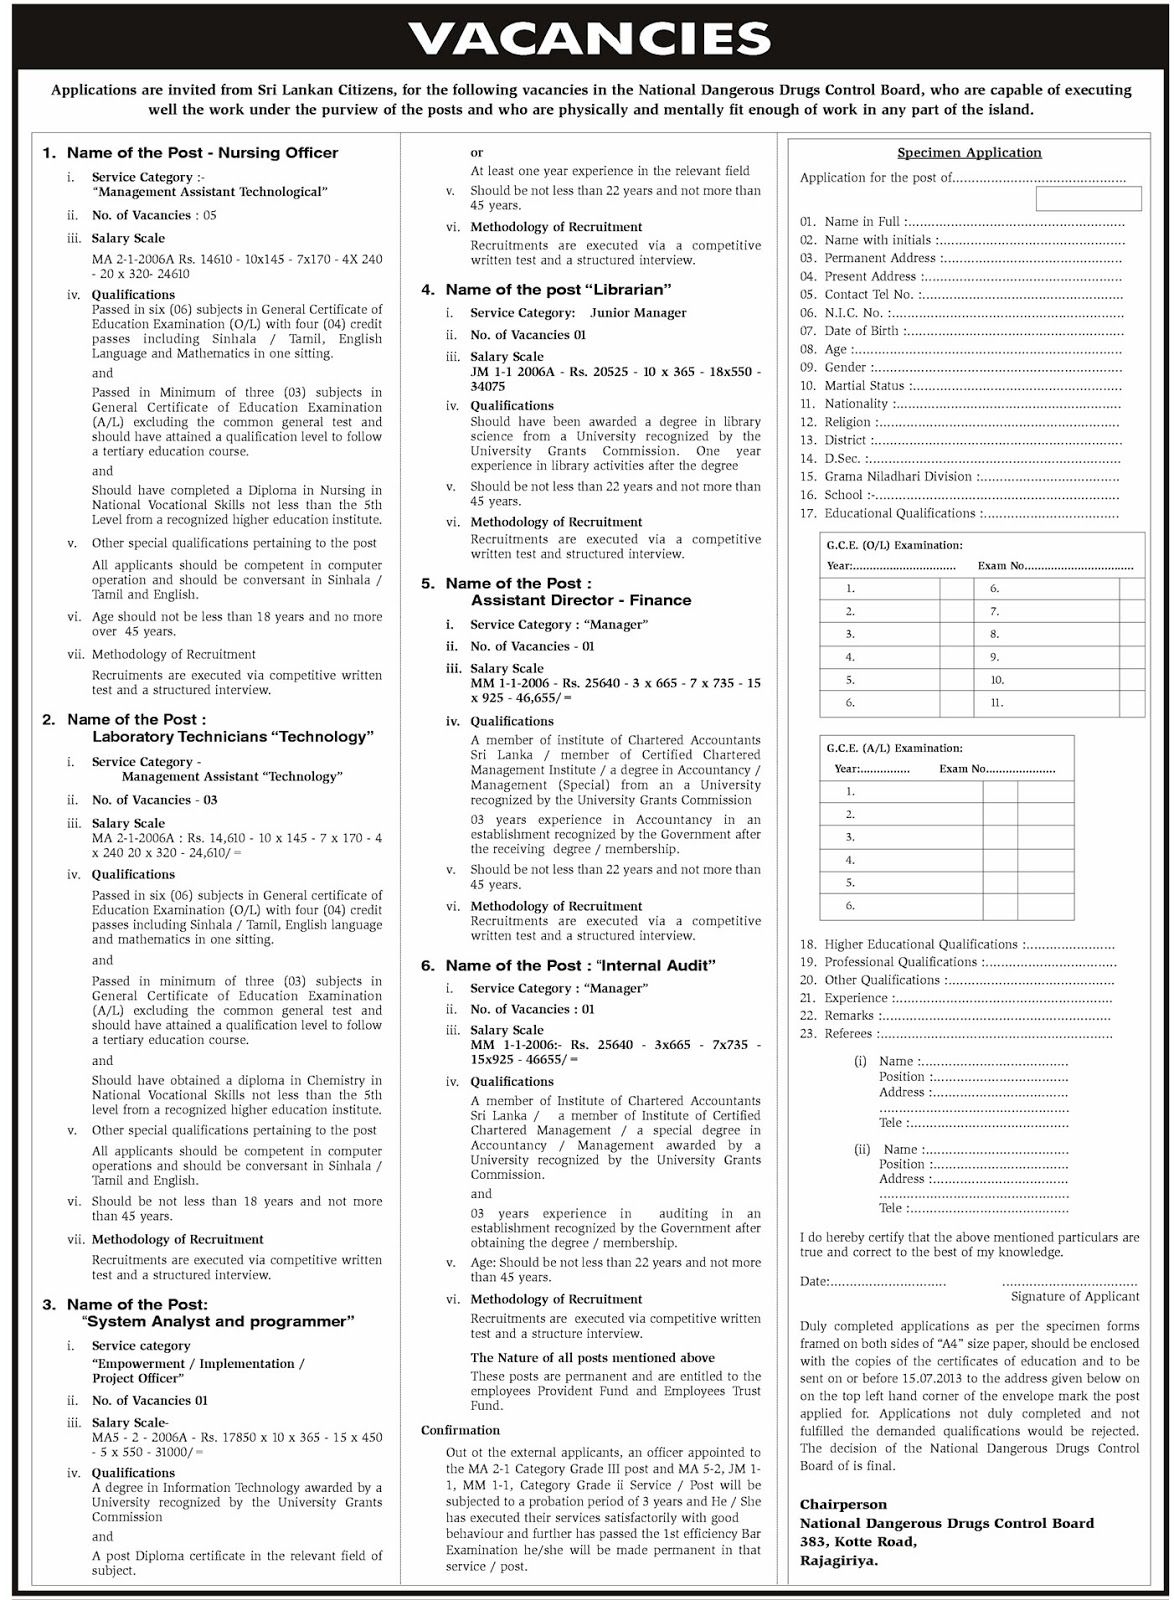 sri lanka vacancies latest vacancies career opportunities specimen application form